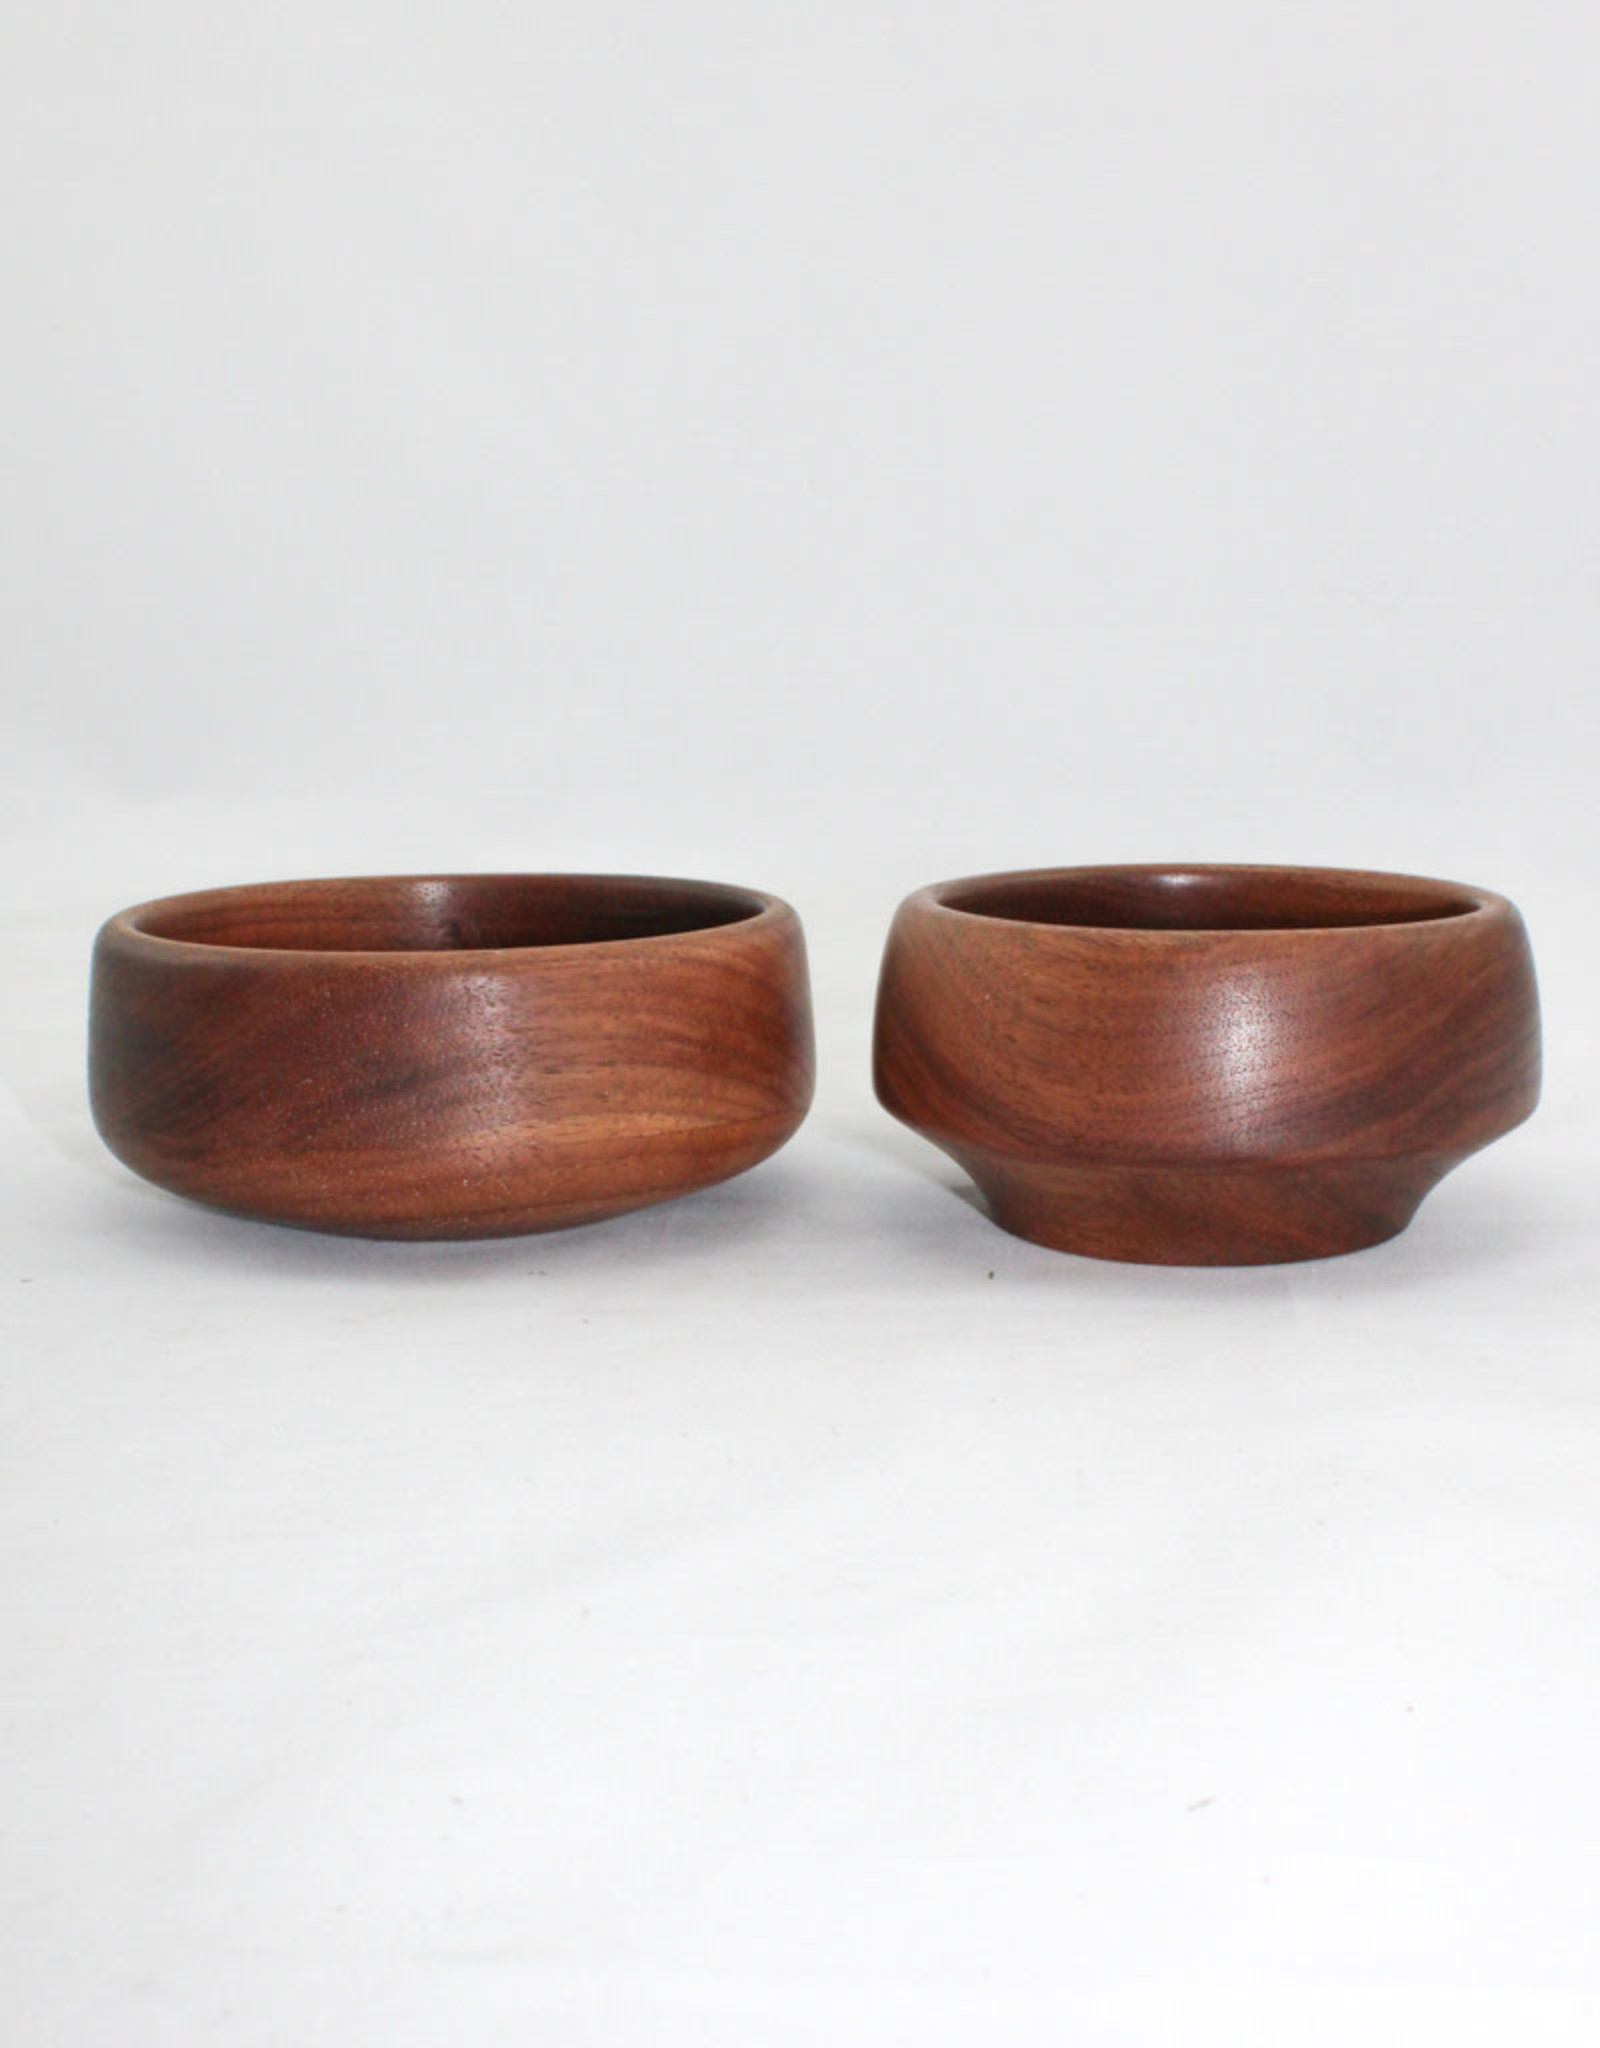 Phil Gautreau Wood Design Walnut Bowl